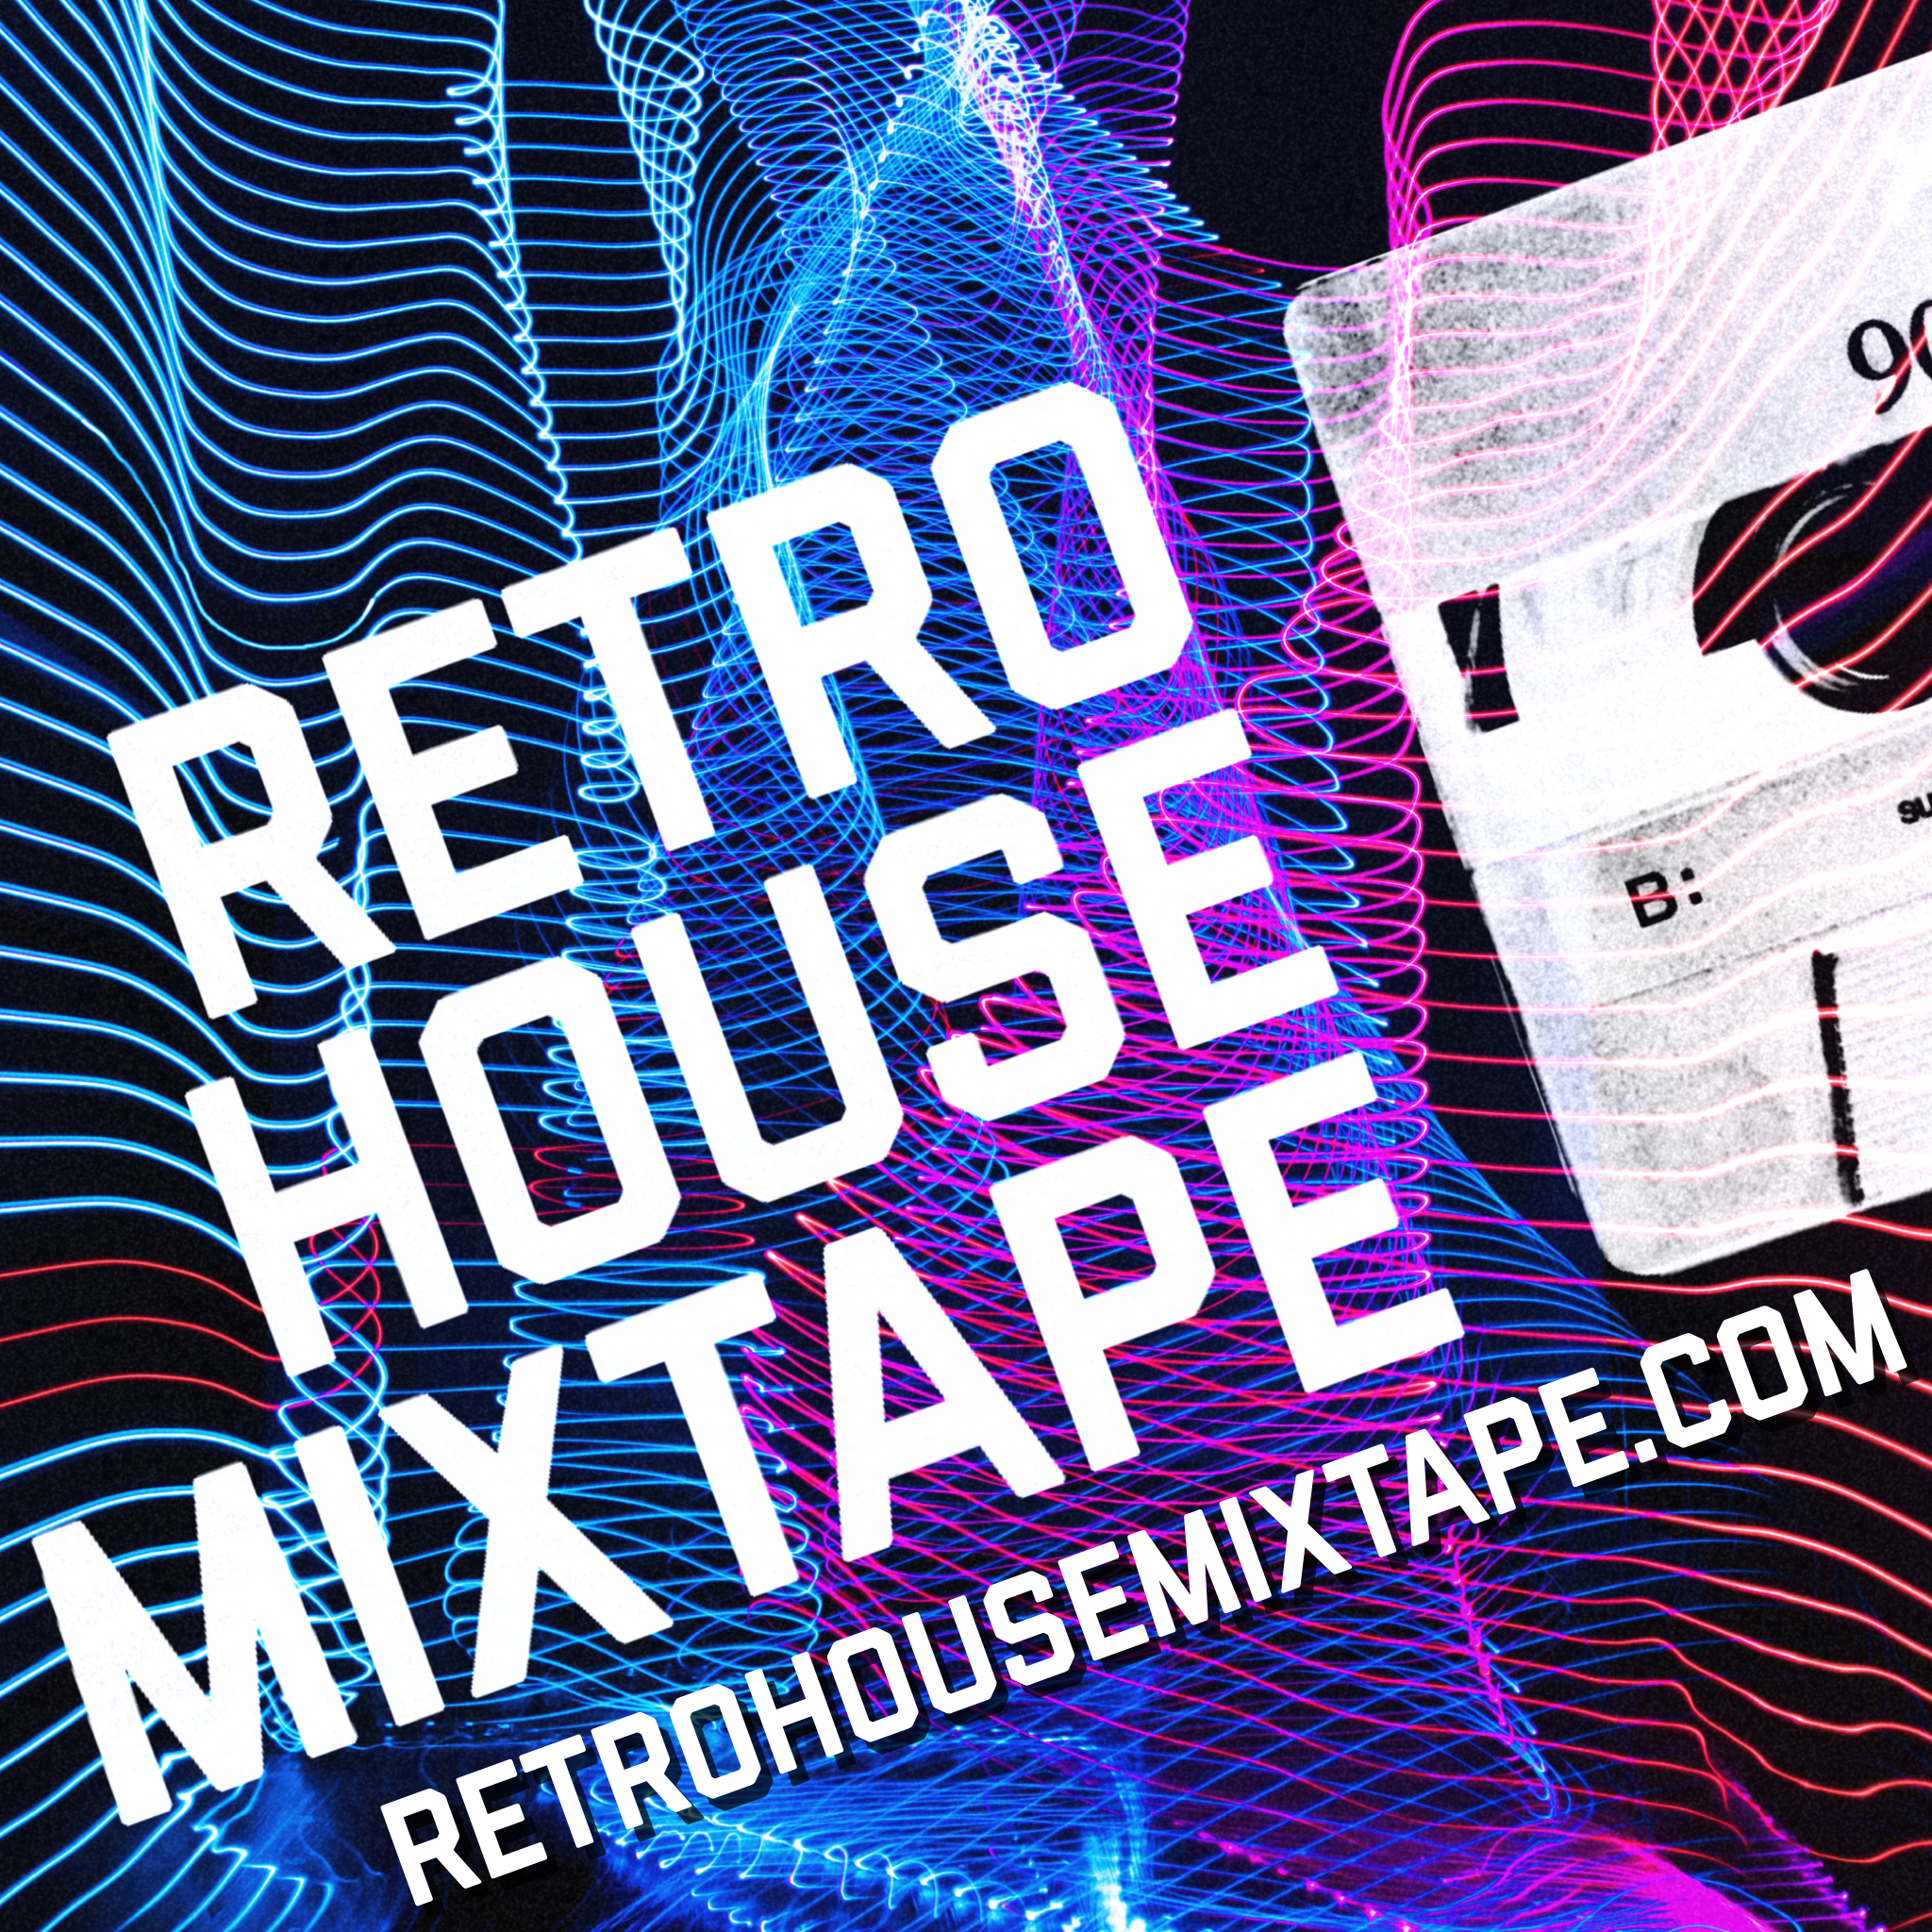 Retro House Mixtape Lasers Logo